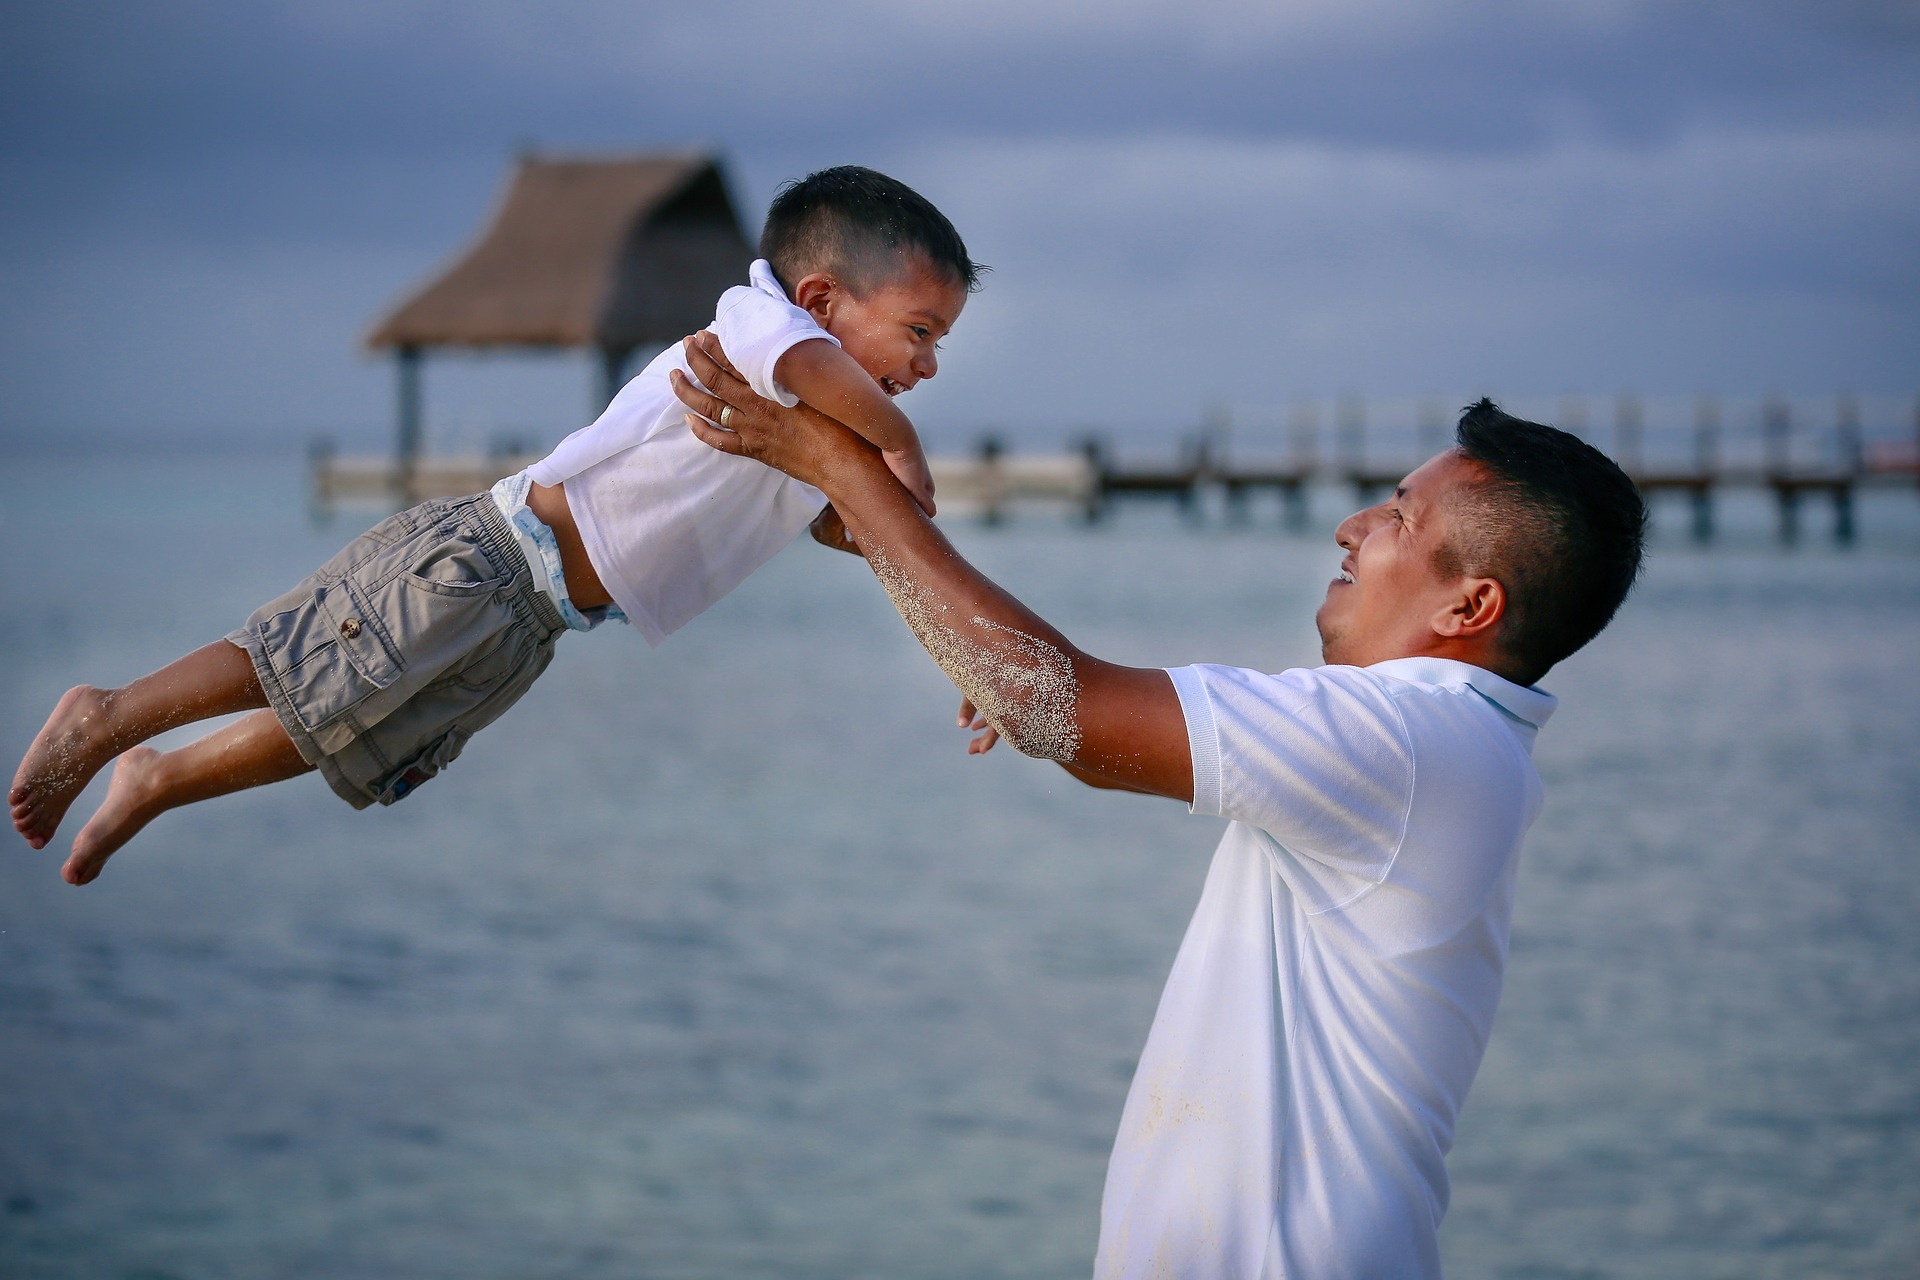 Father swinging little boy in the air. Both are smiling and the ocean is in the background. [Rising Tide Women's Whole Life Wellness]